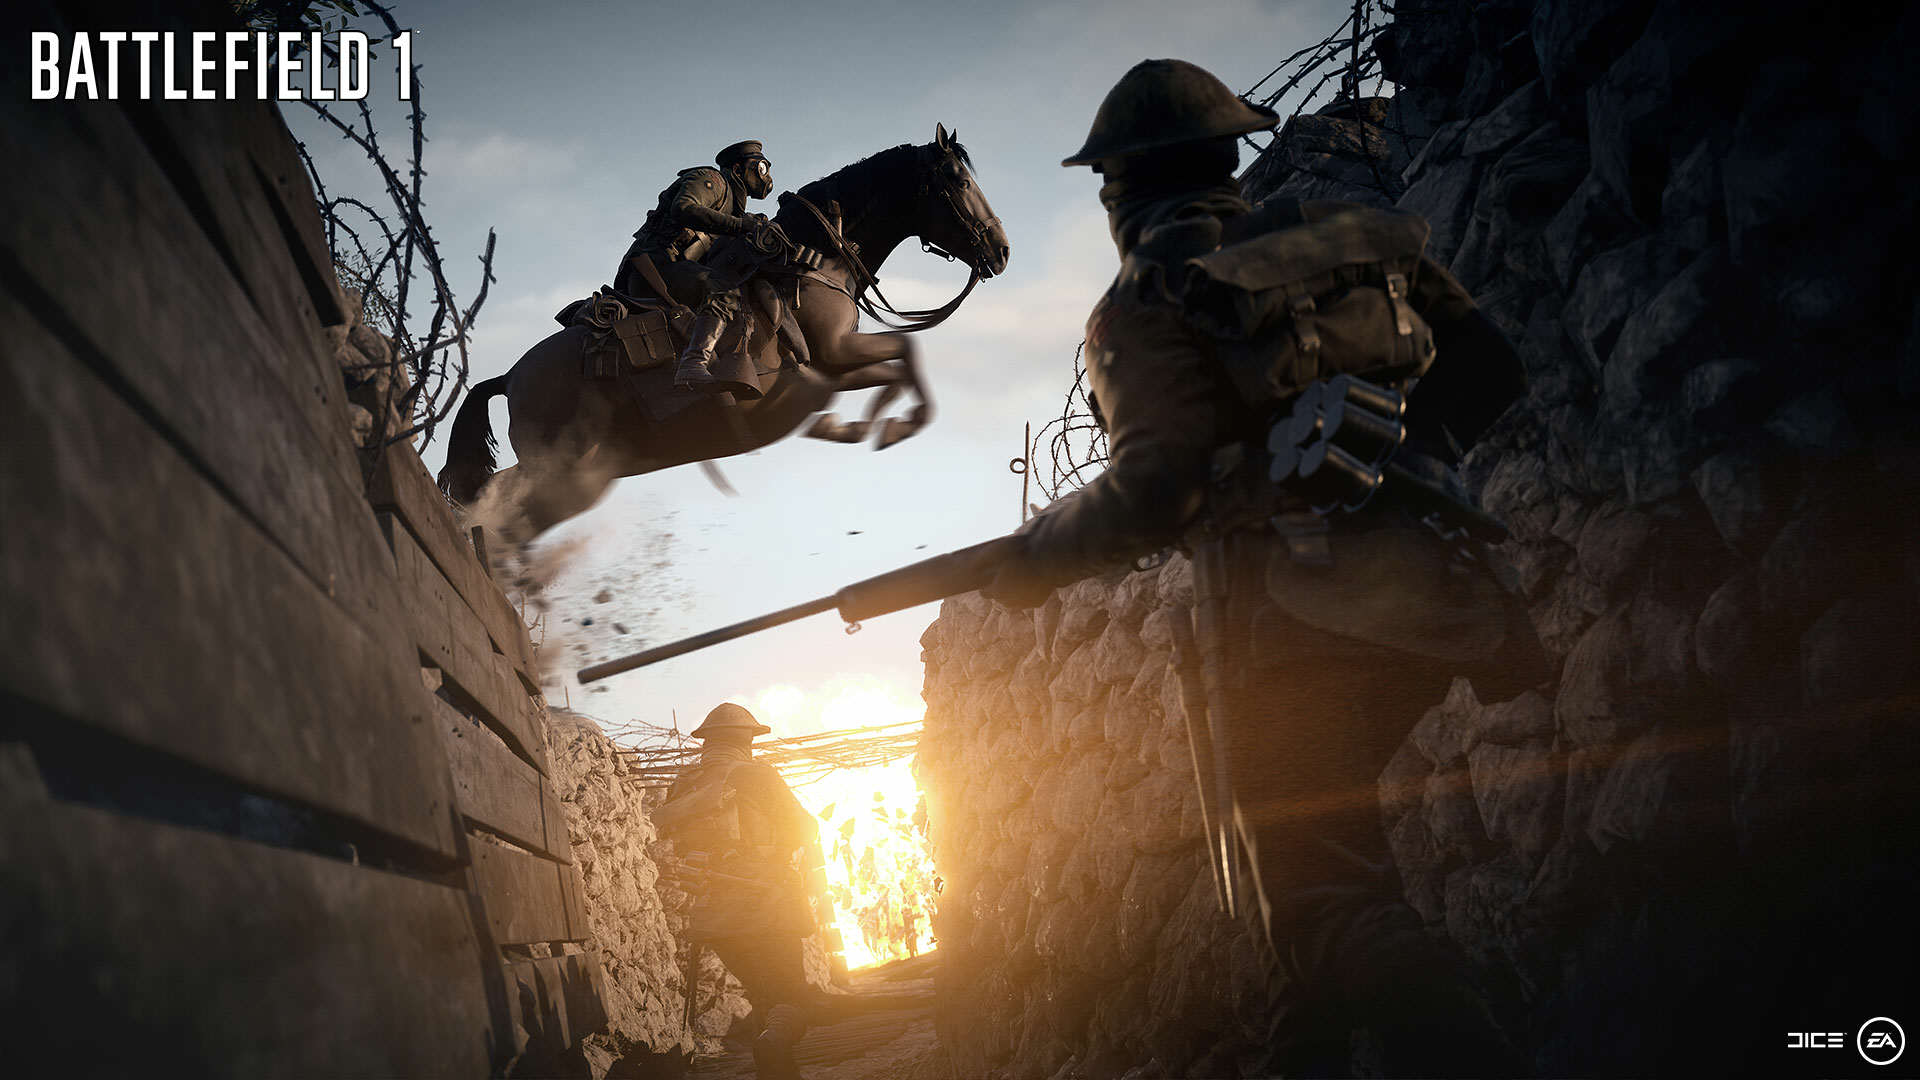 BF1 EA PLAY 06 HORSES WM Battlefield 1 Gets Epic New Trailer And Gameplay Features